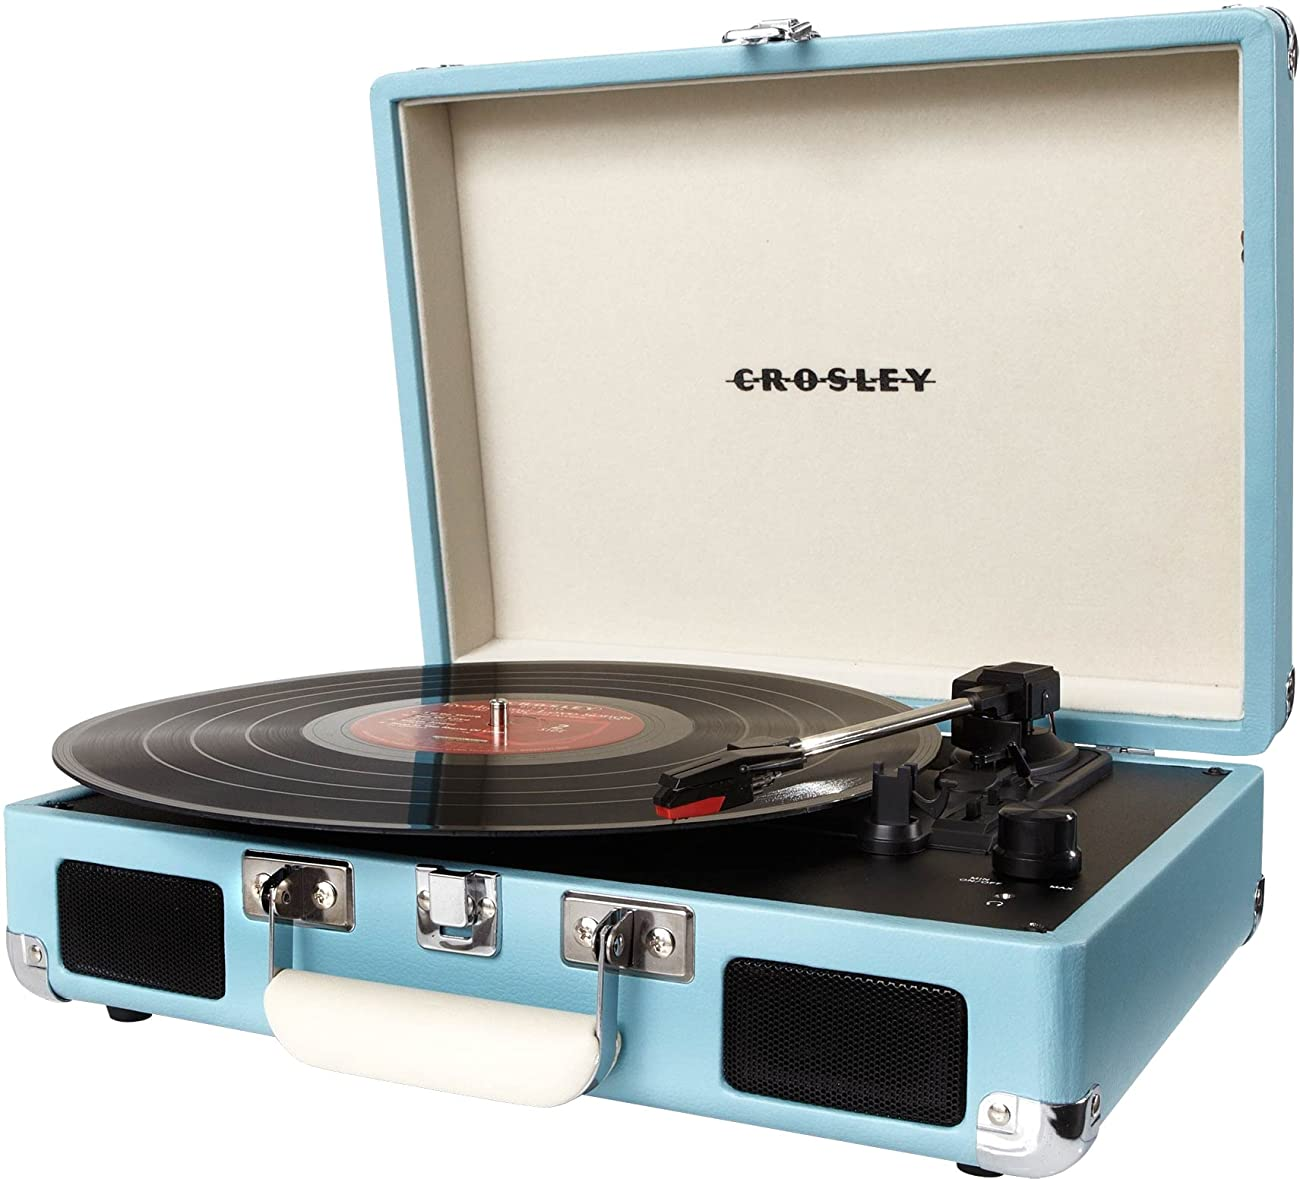 Crosley CR8005A-TU Cruiser Portable 3-Speed Turntable, Turquoise 1